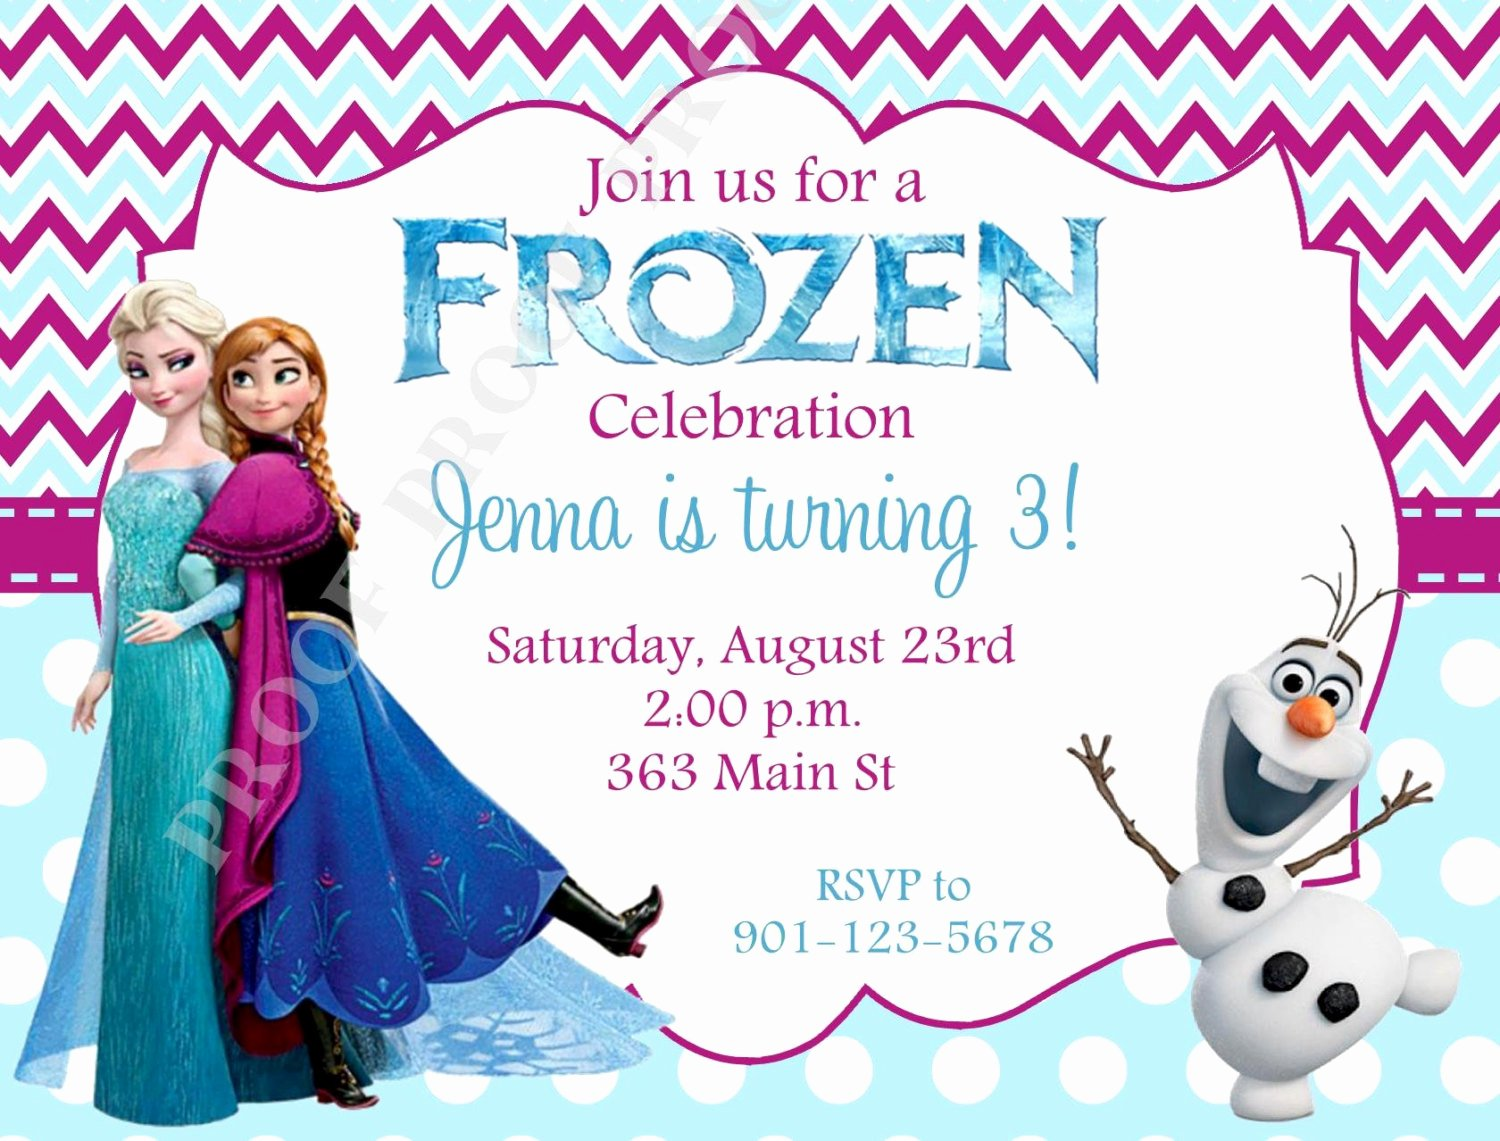 Frozen Invitation Template Free Awesome 10 Printed Frozen Invitations with Envelopes Free Return